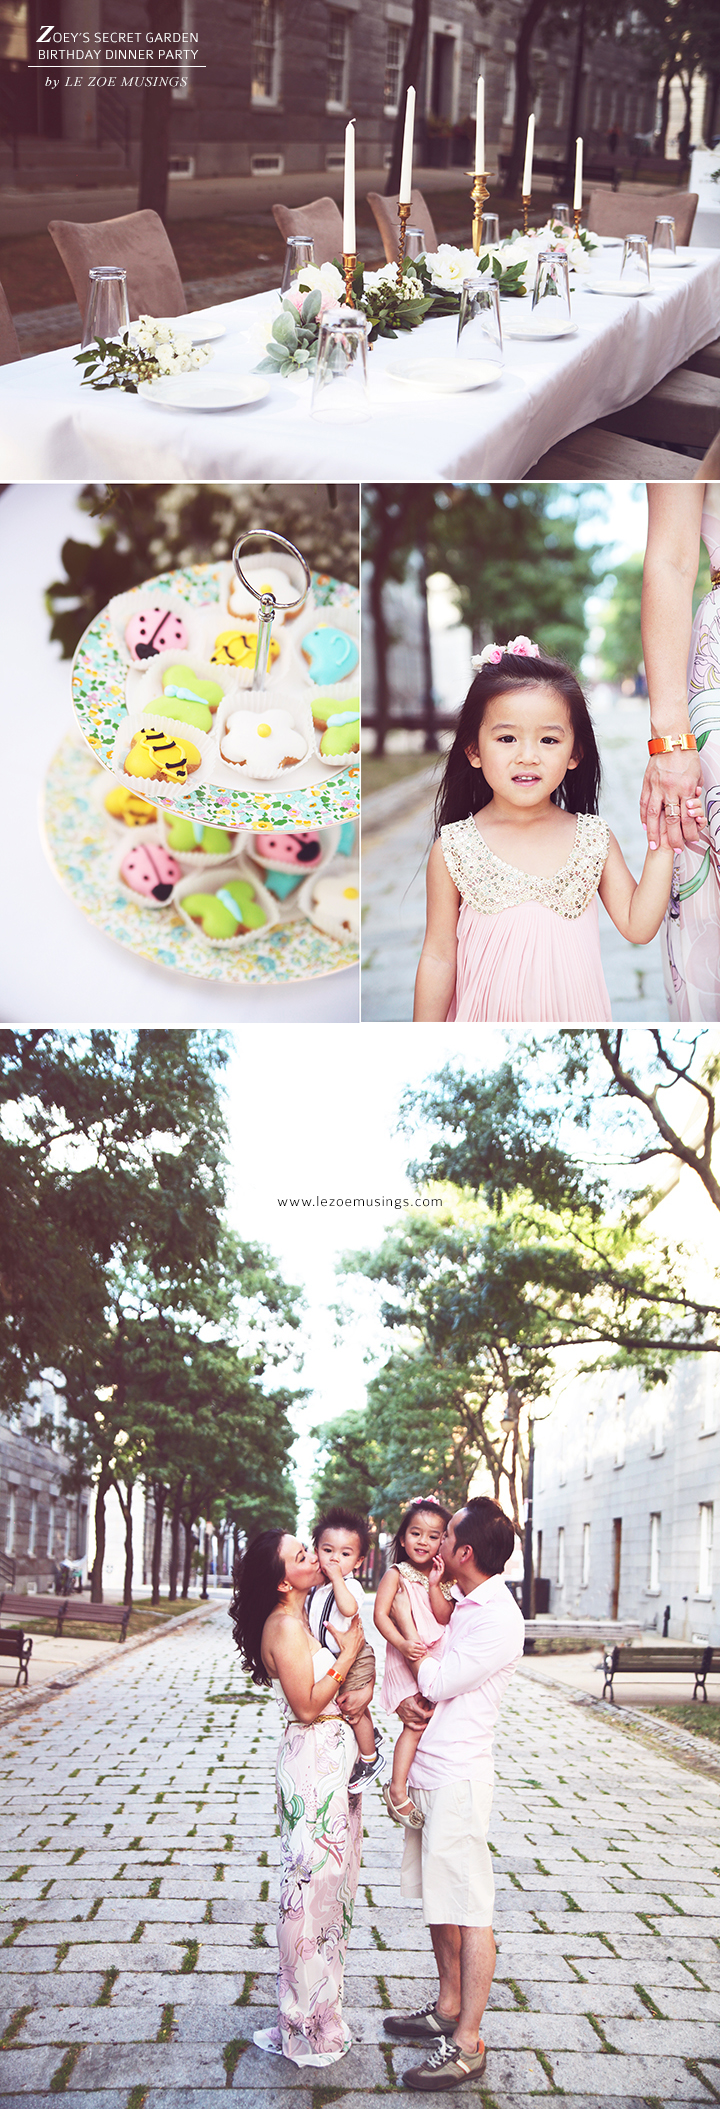 Secret Garden Birthday Party by Le Zoe Musings 3